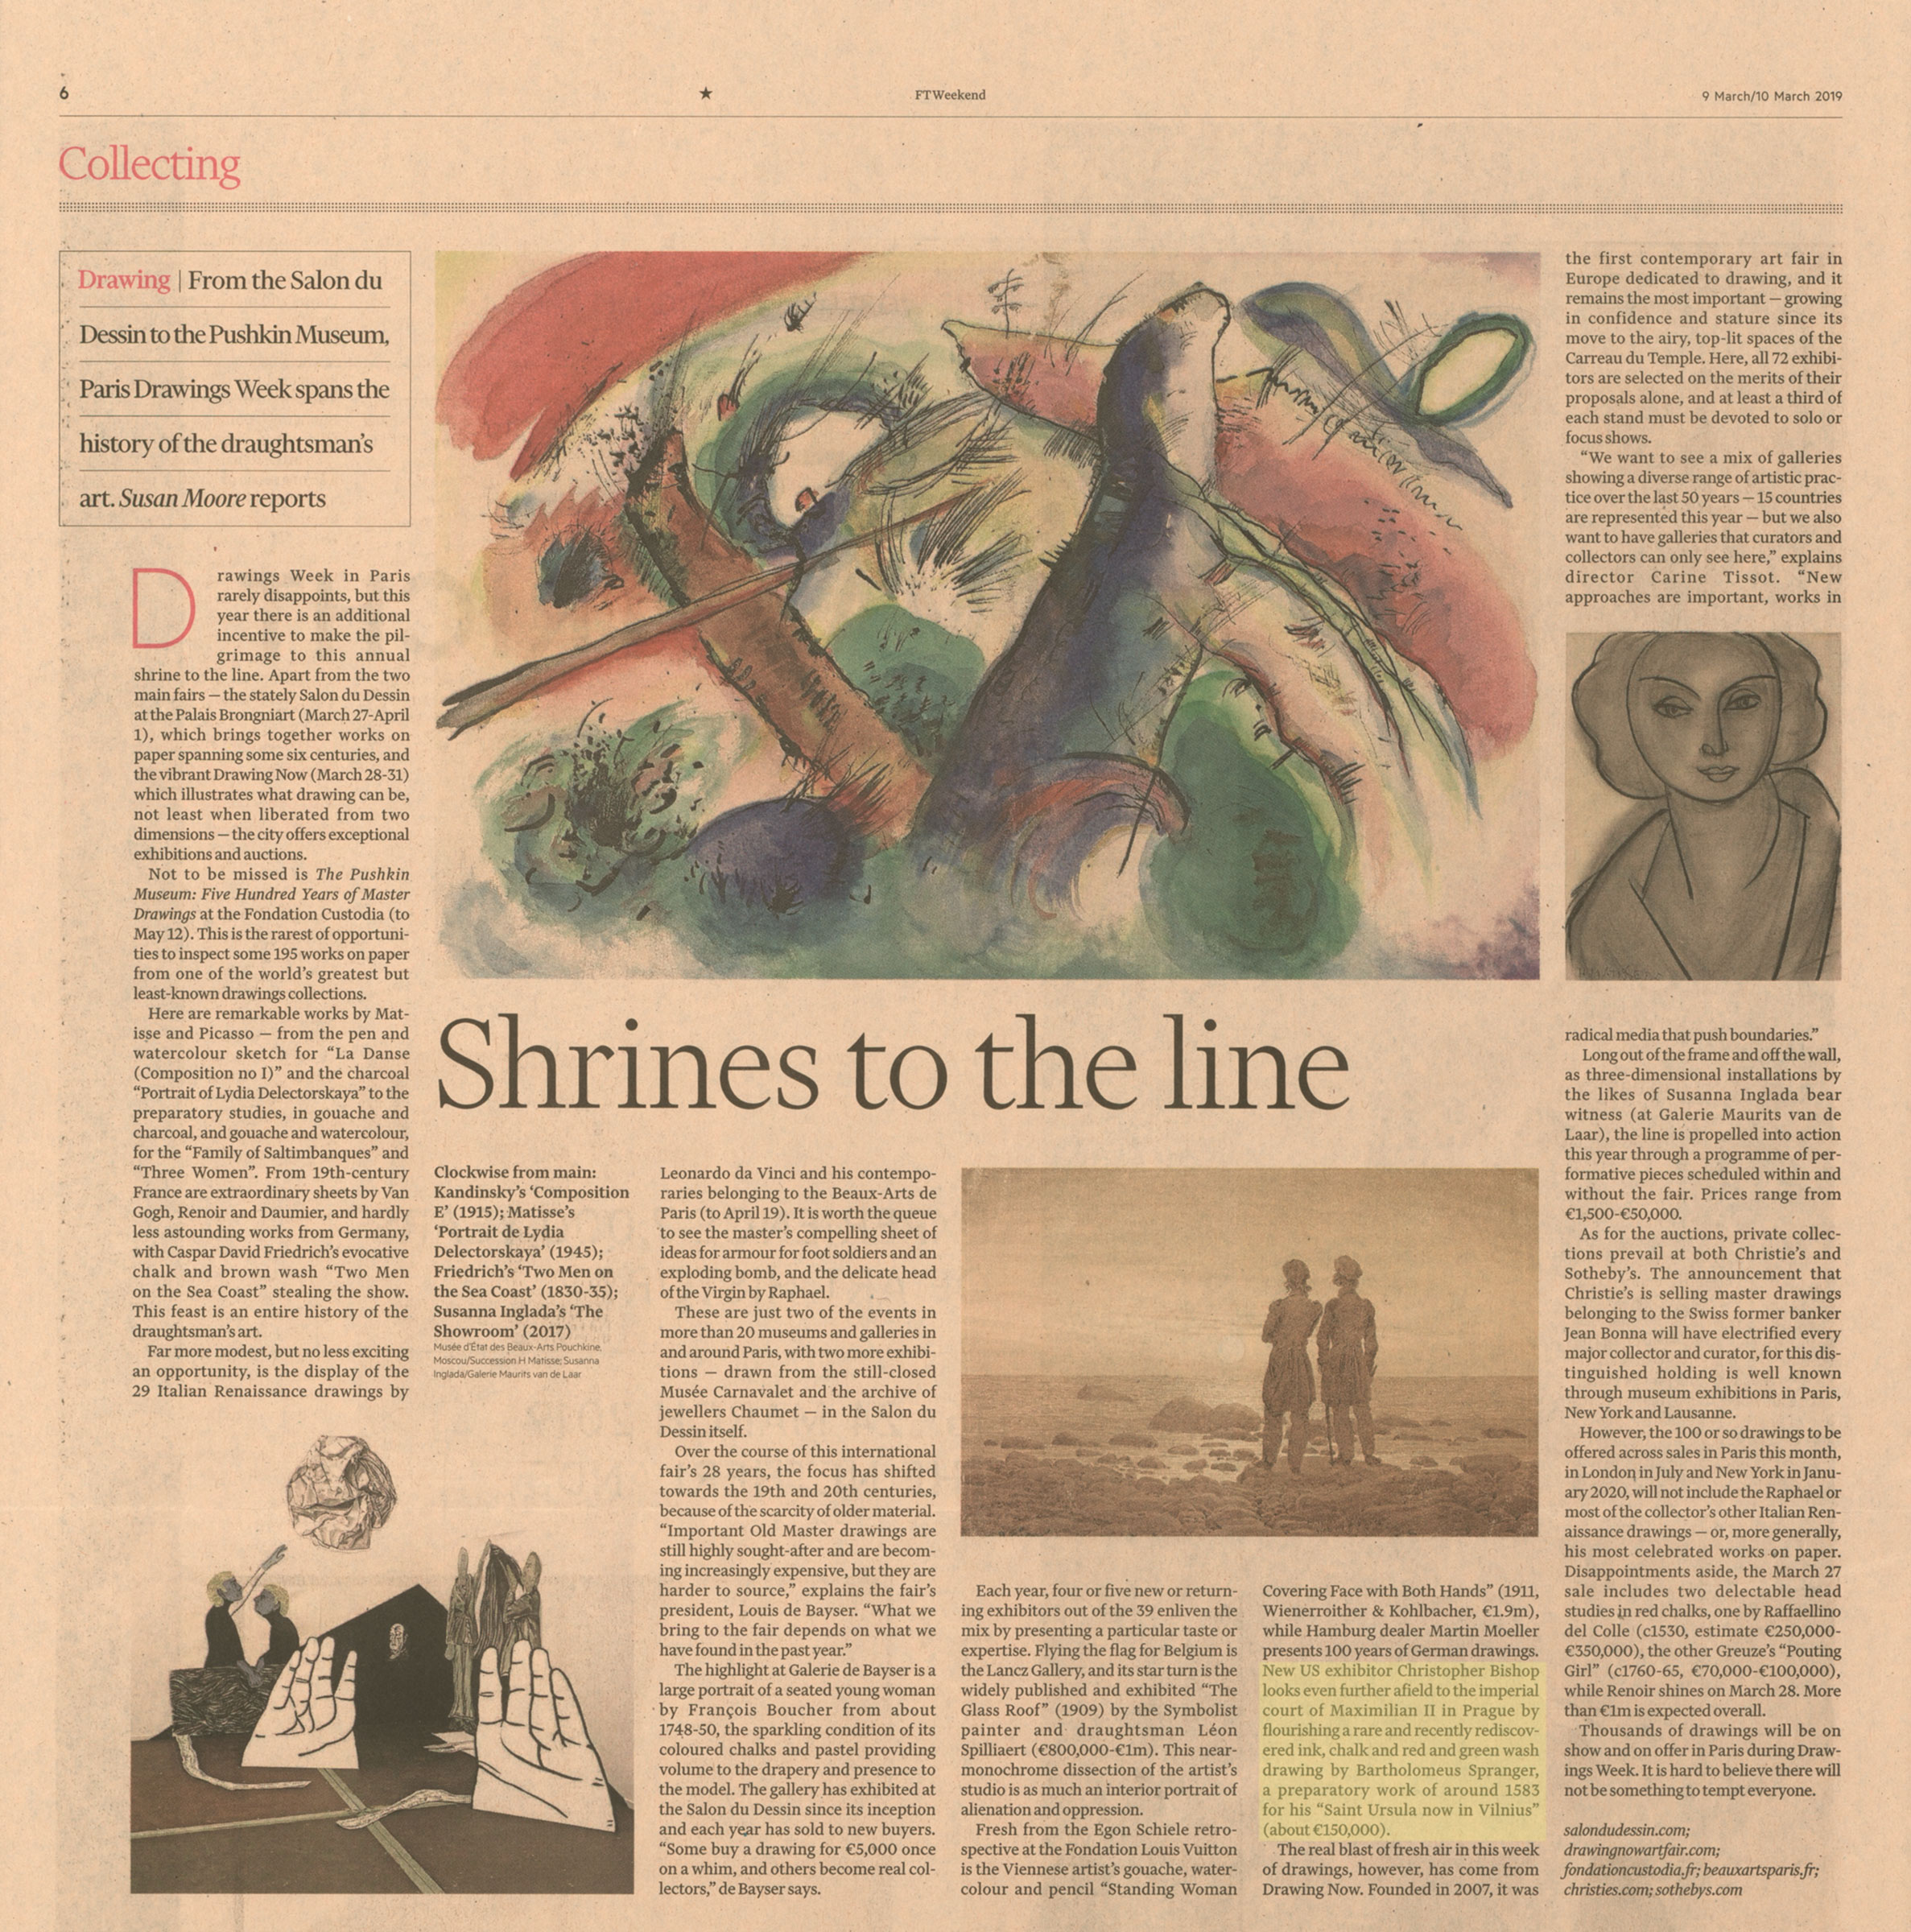 CBFA featured in the Financial Times - FTWeekend - Collecting - March 9, 2019